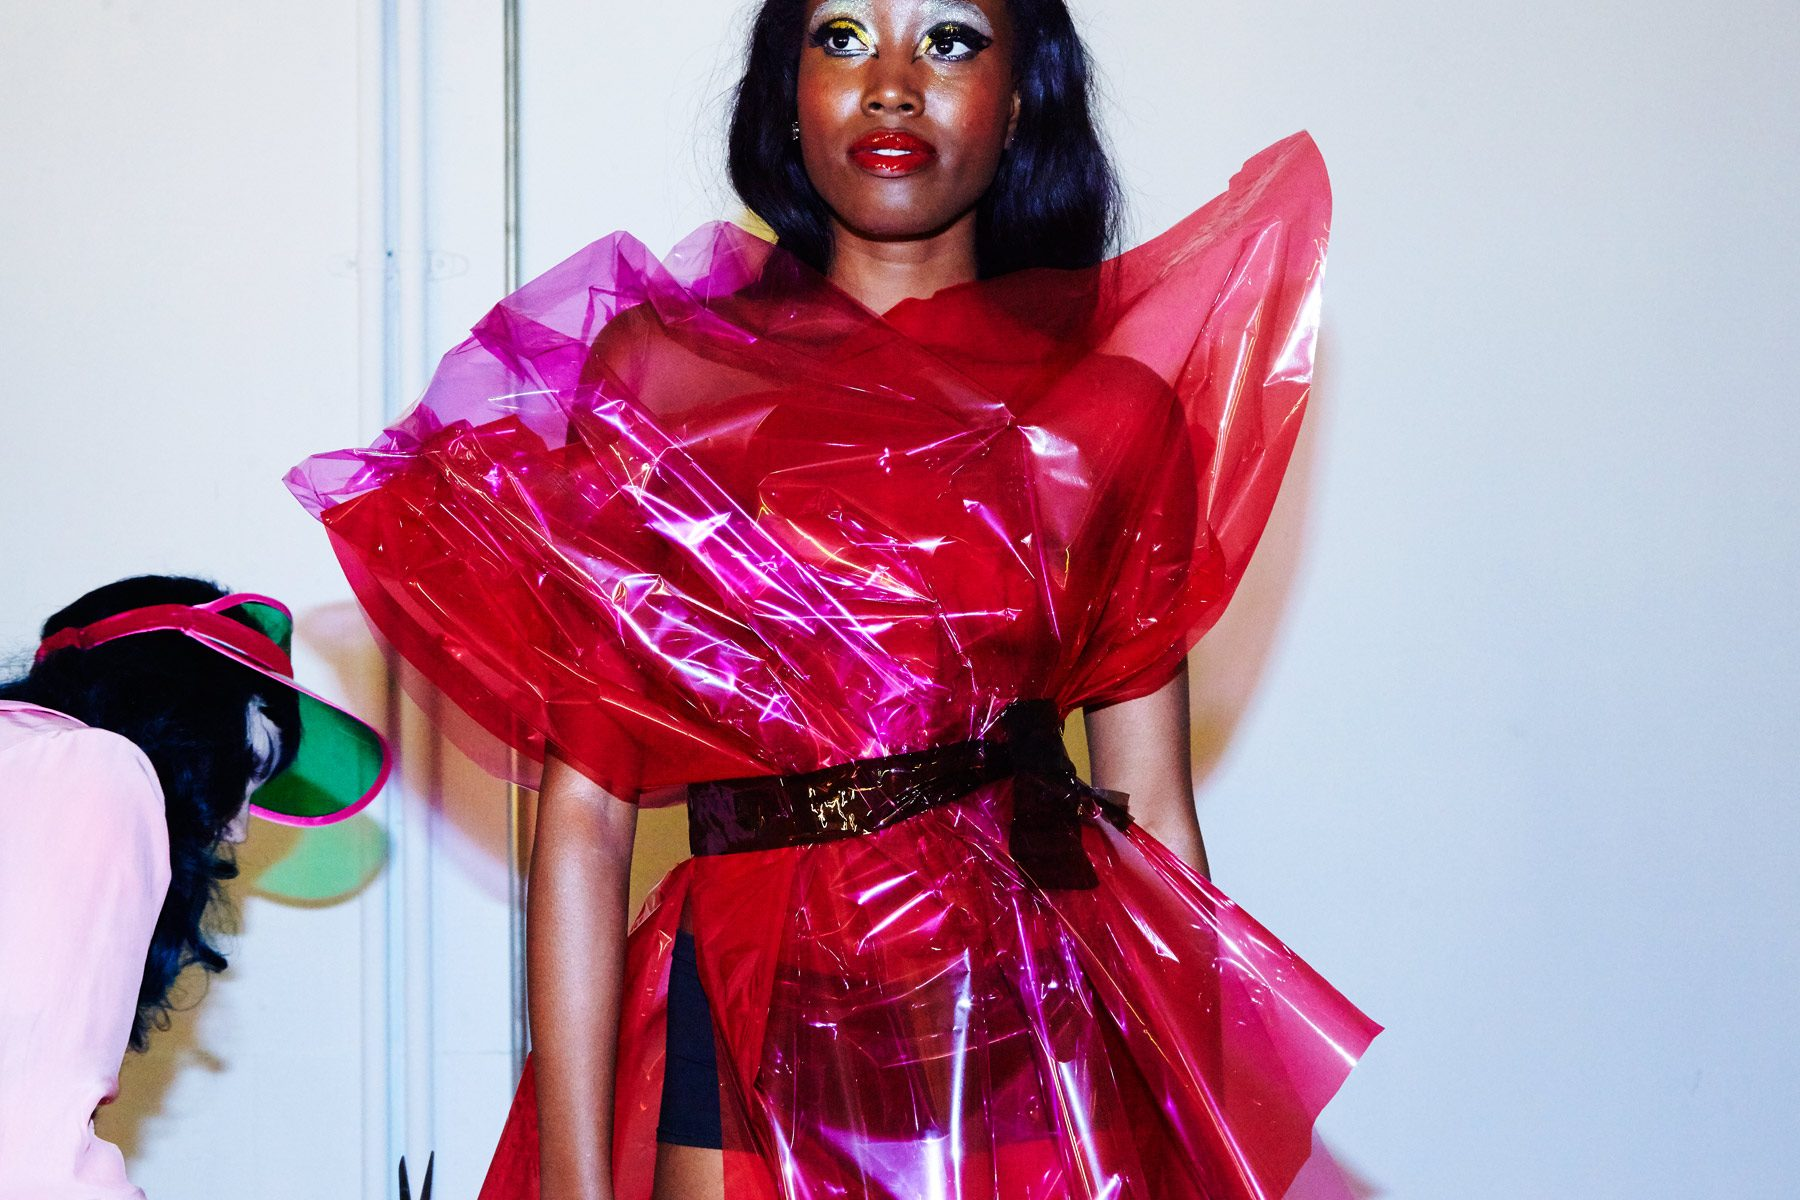 Designer Stella Rose Saint Clair fits a cellophane dress on a model. Photographed by Alexander Thompson for Ponyboy magazine in New York City.